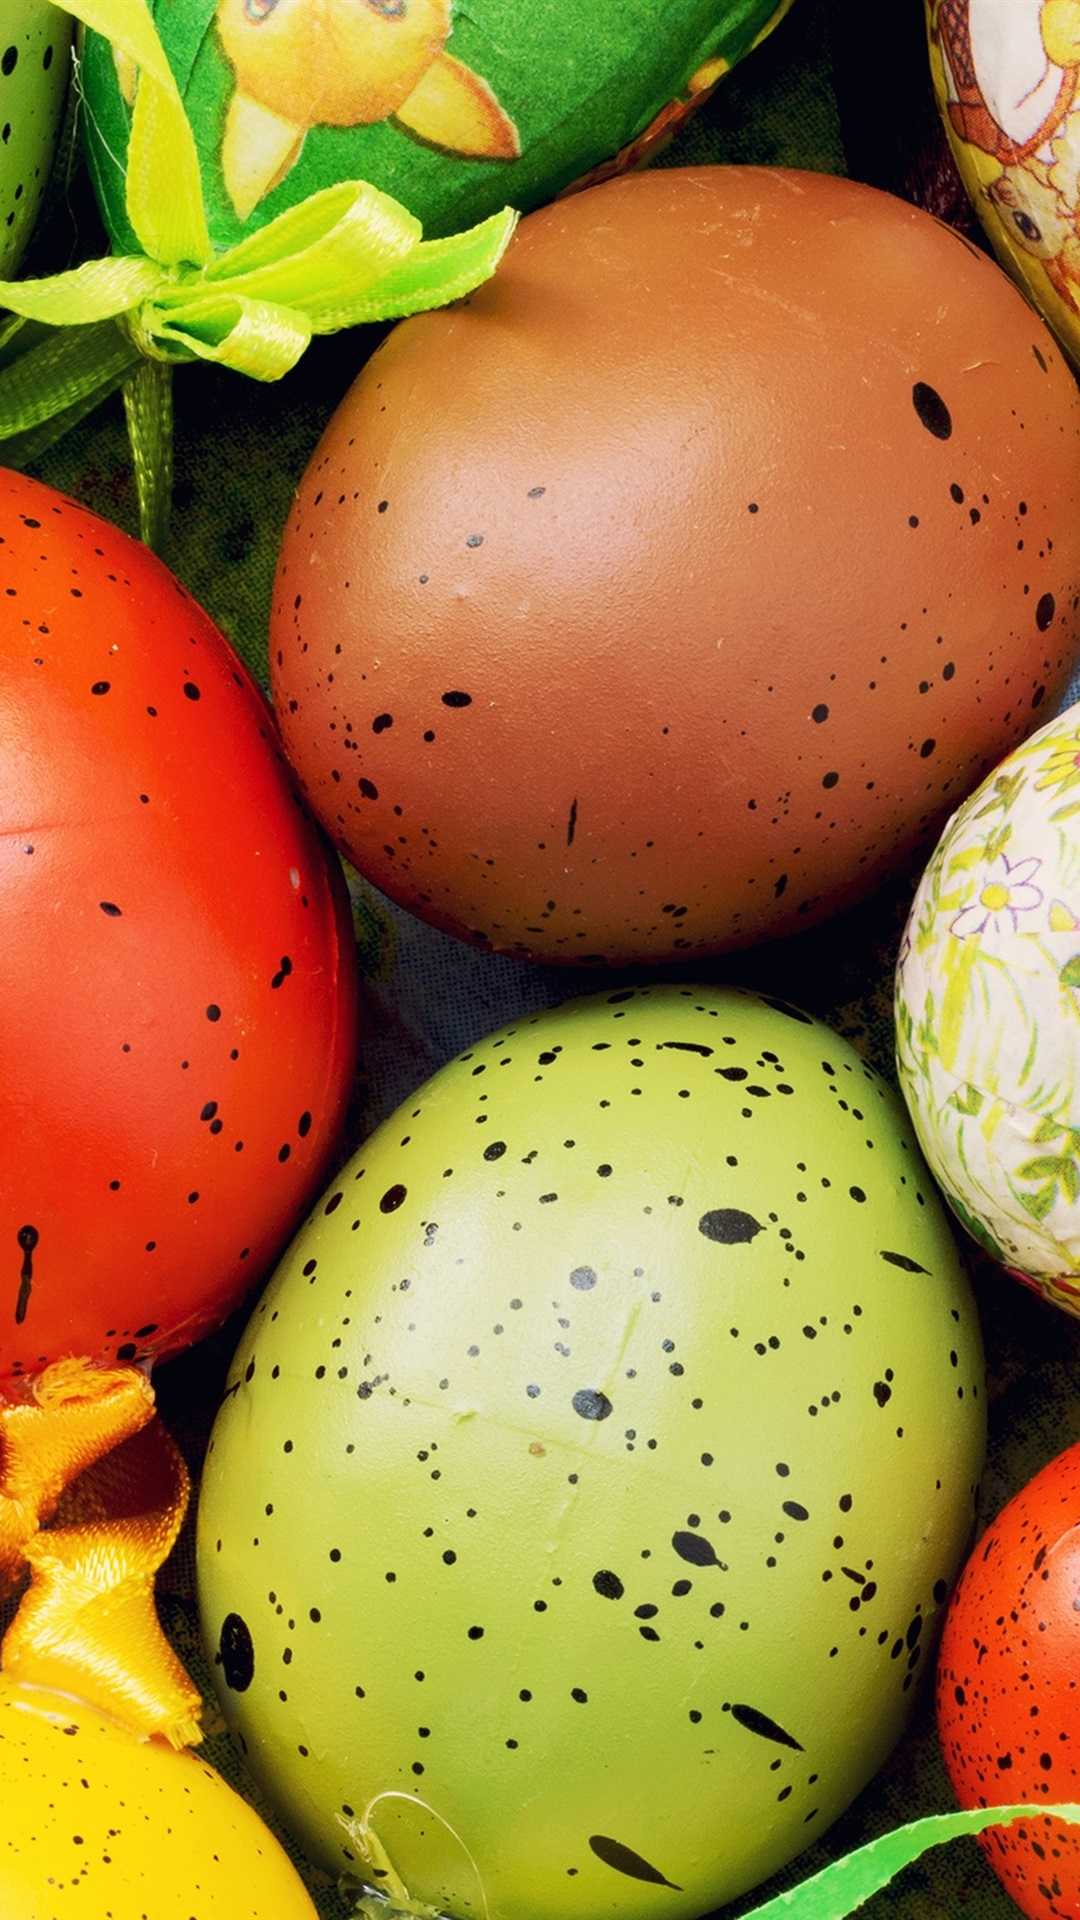 Colorful Eggs Close Up Happy Easter 1080x1920 Iphone 8 7 6 6s